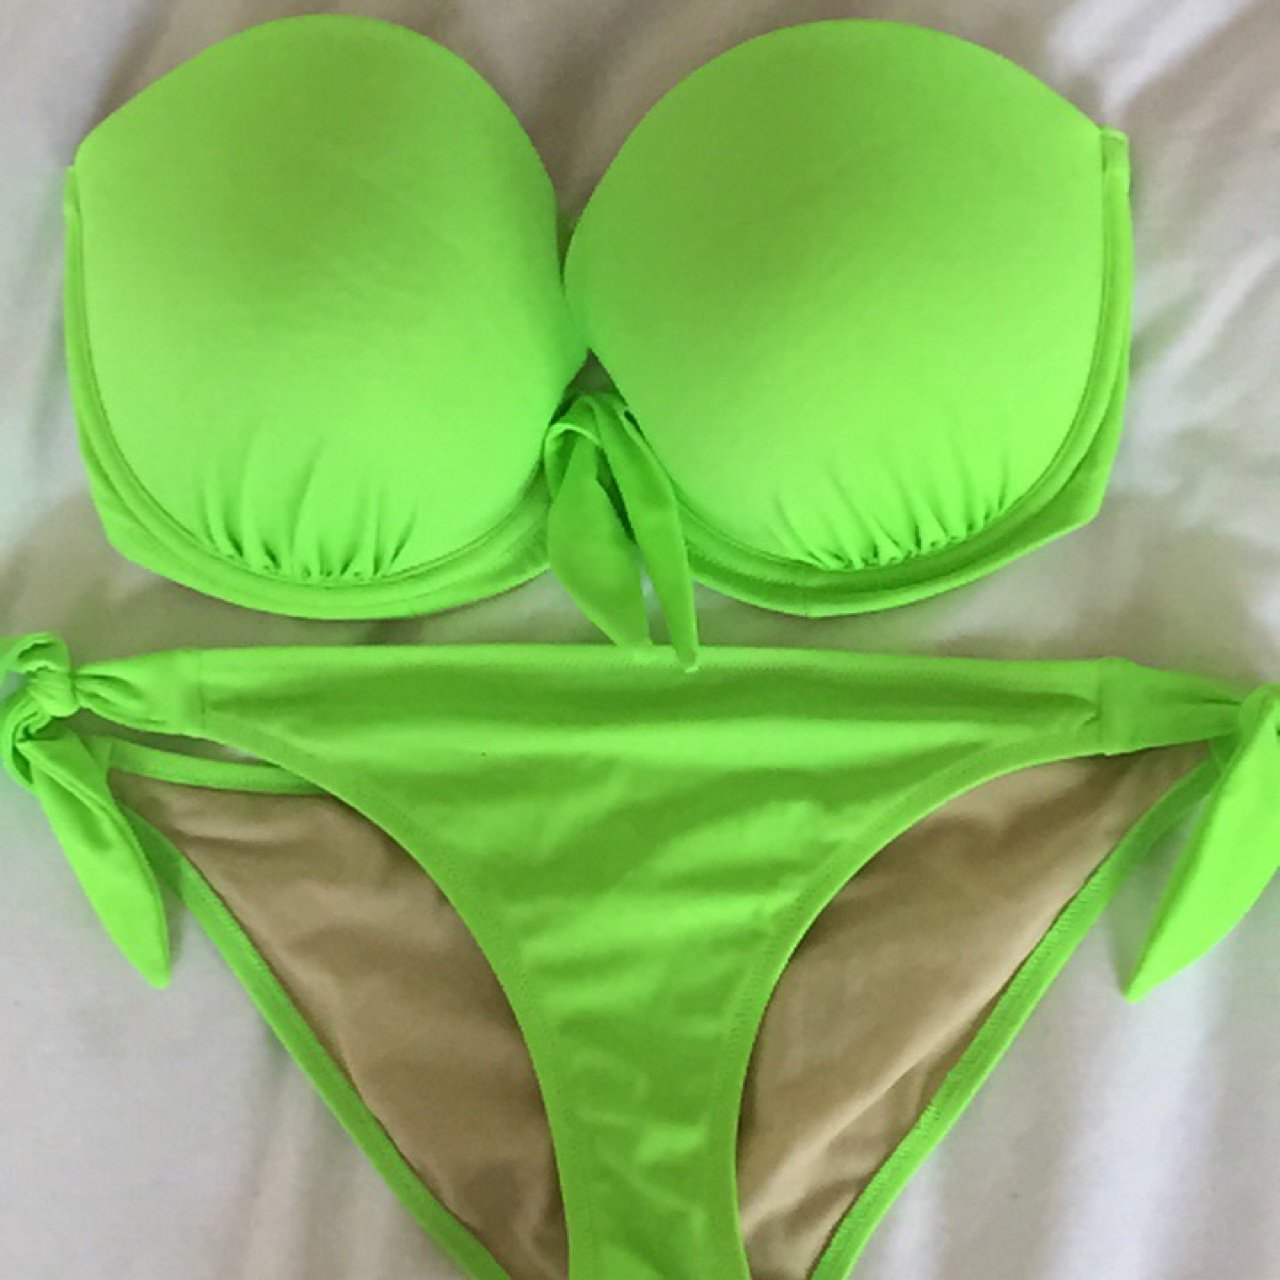 4dd9ba638c BRAND NEW without tags Boux avenue bikini set. 34e top and a - Depop